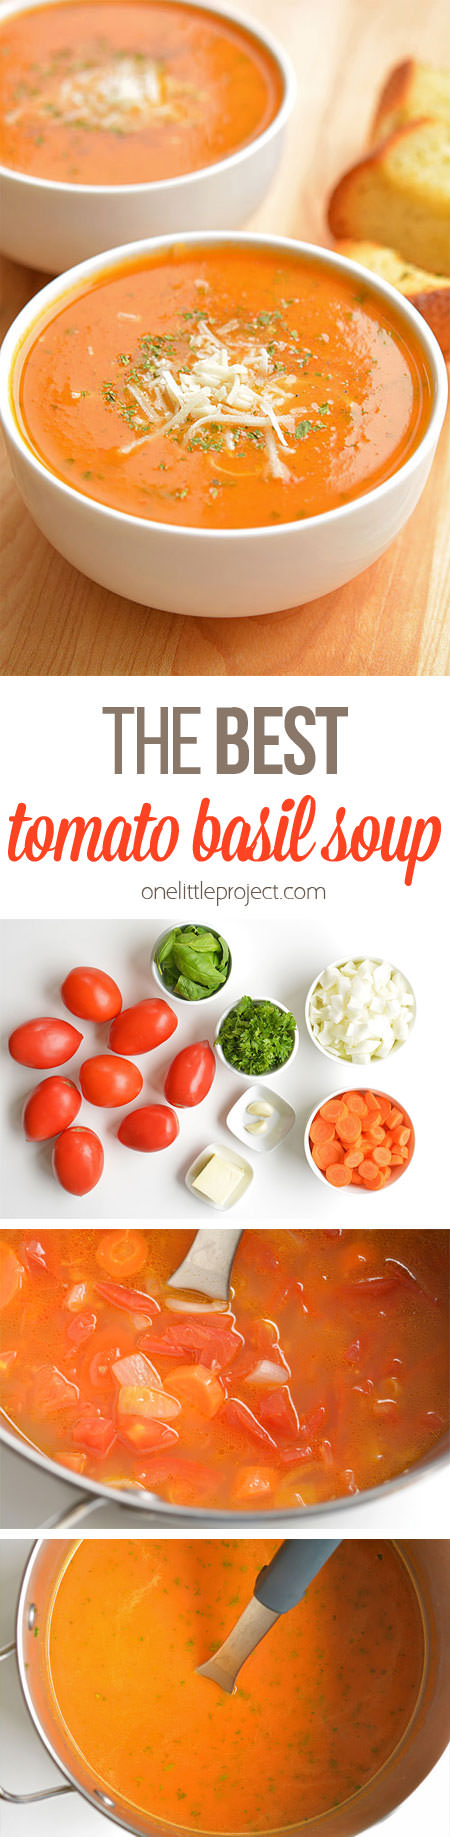 You are going to love this soup. Its is healthy and finger licking delicious. The flavors are perfect, and it always tastes amazing!